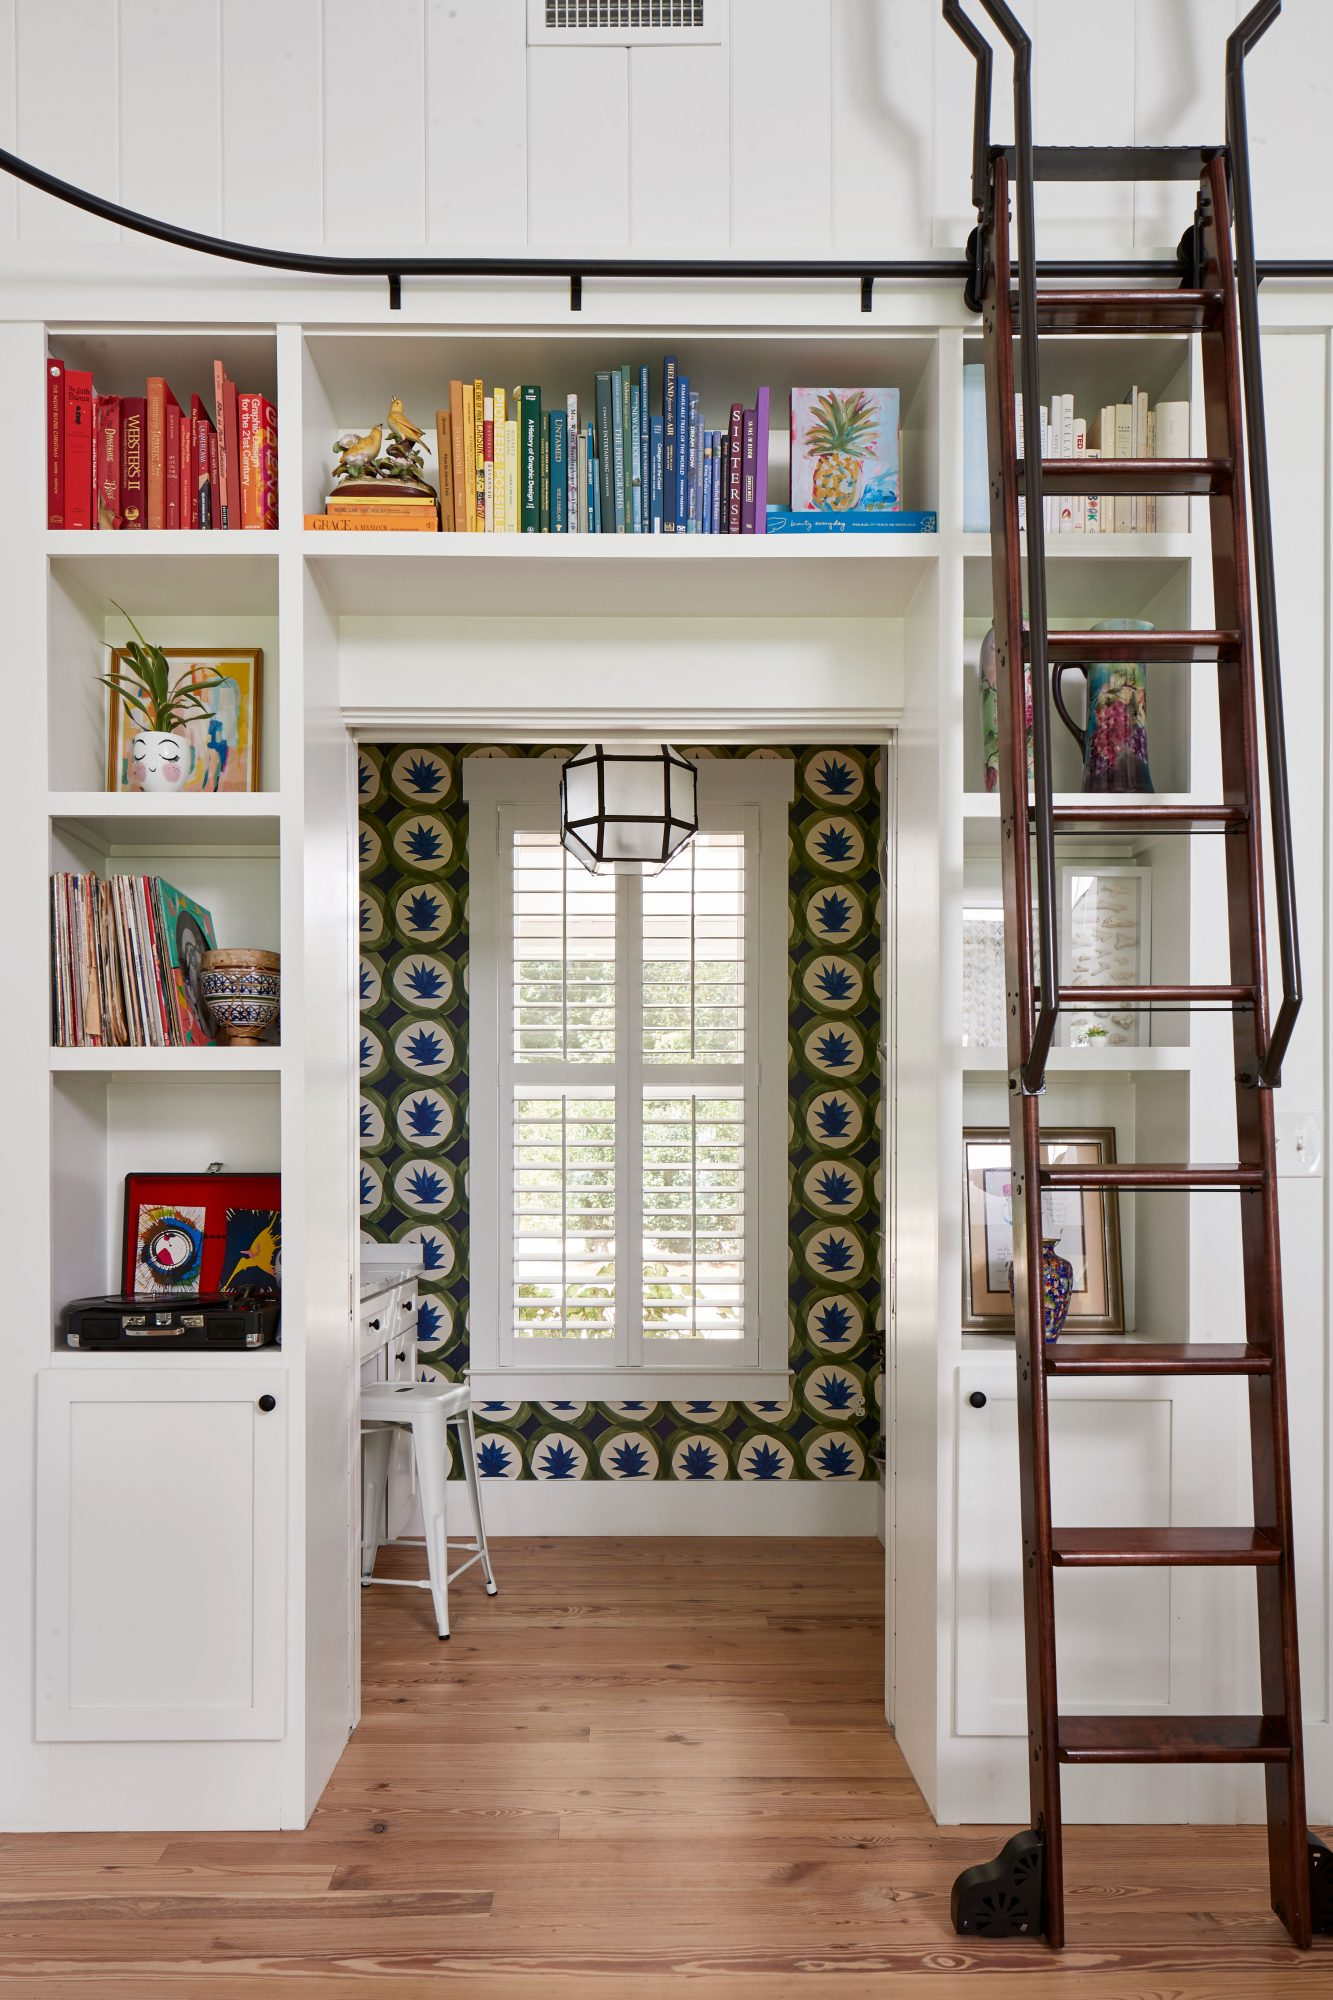 Watson Family Farmhouse in Savannah, GA Bookshelves